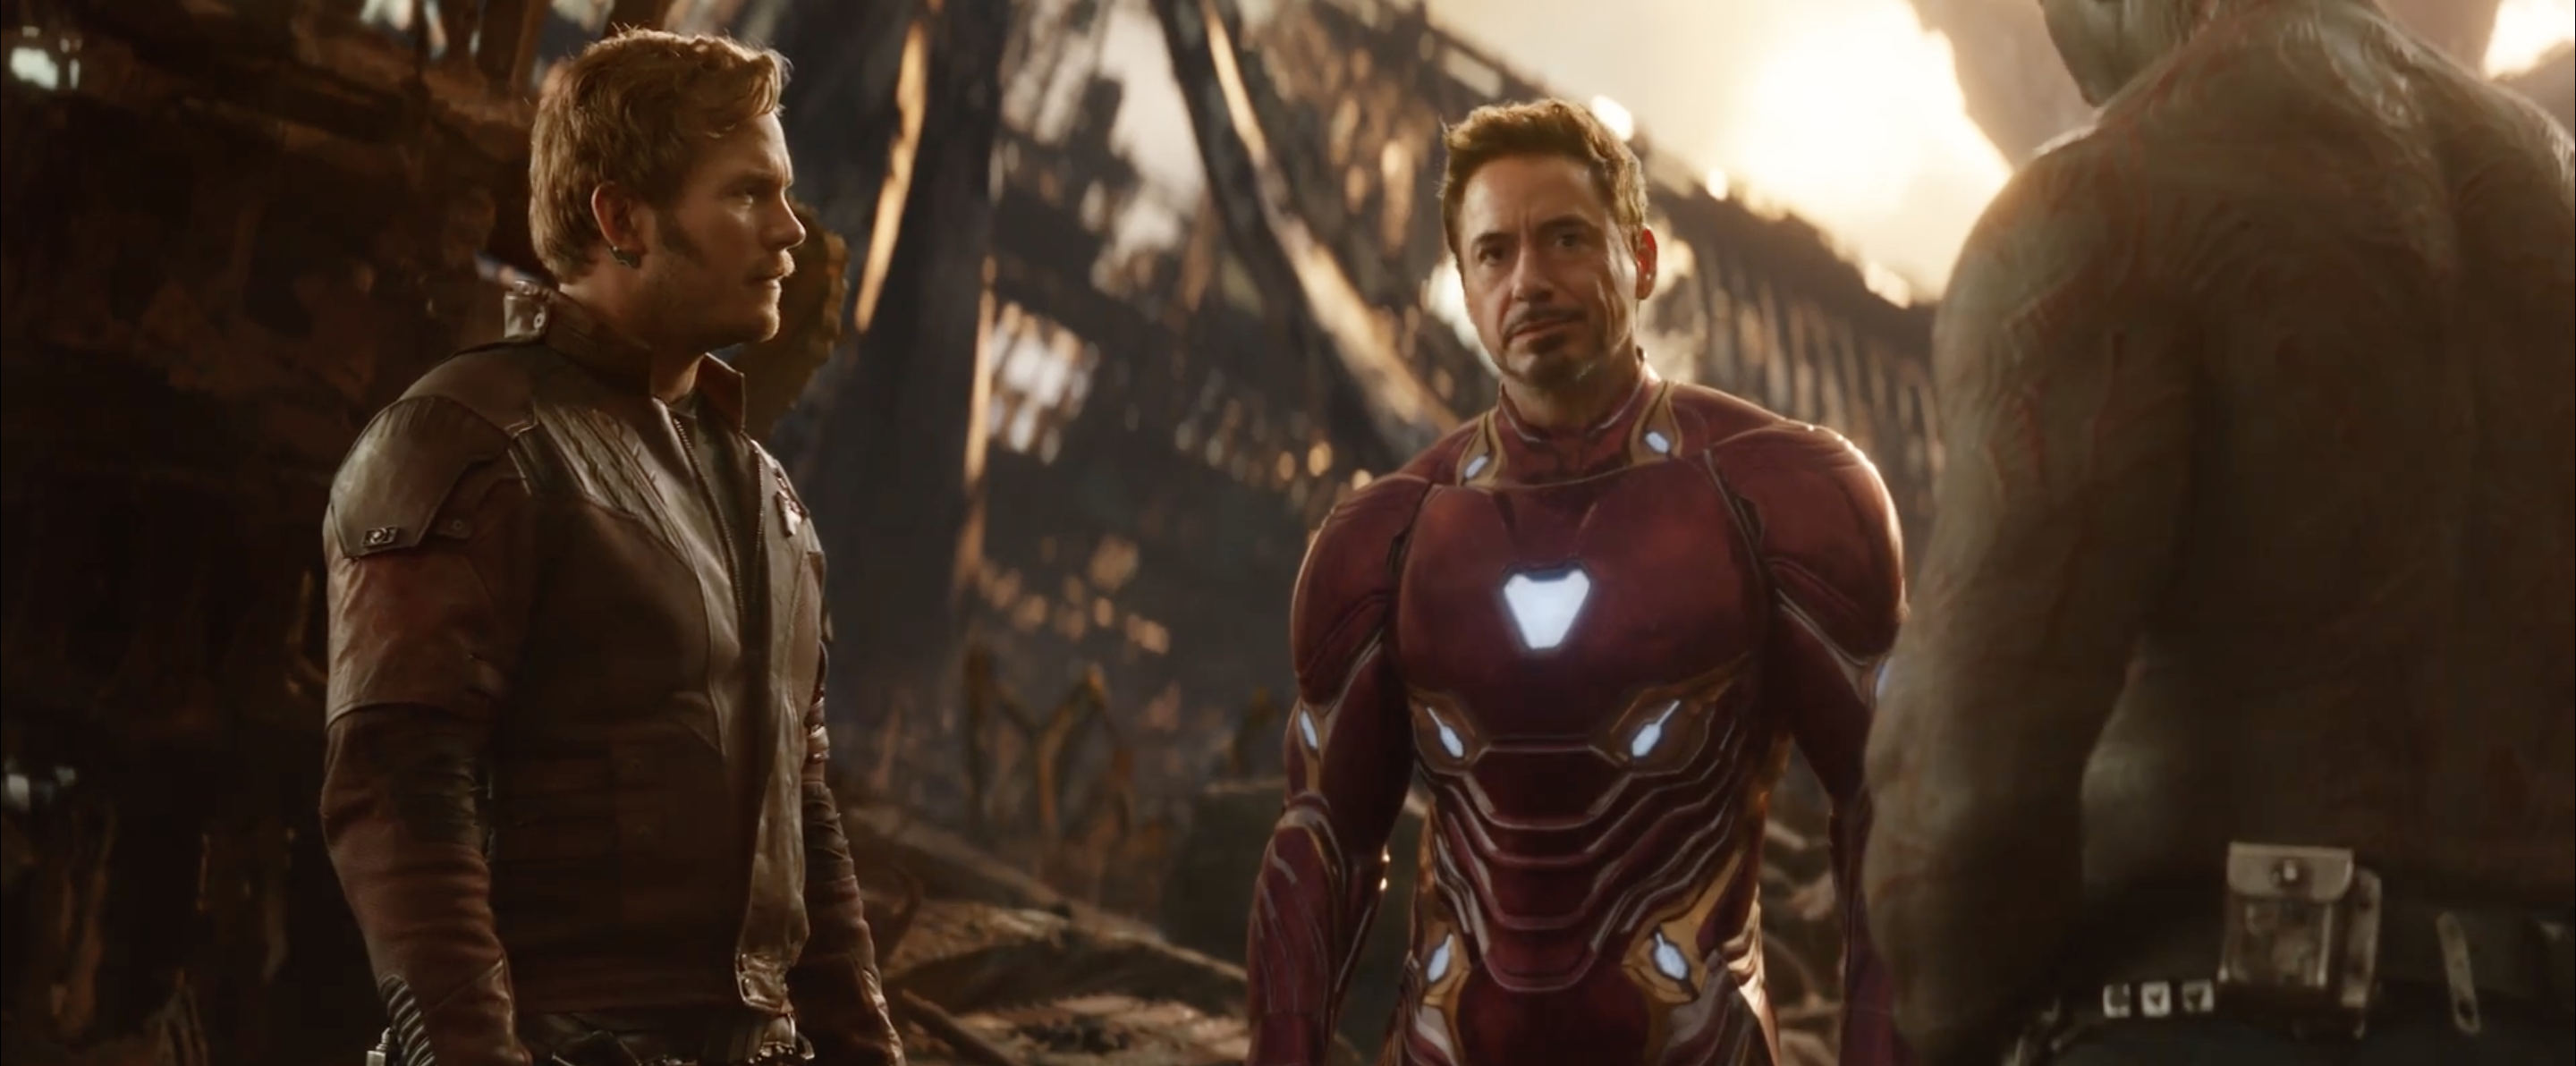 Avengers: Infinity War Garners Top Box Office Opening Weekend Ever!